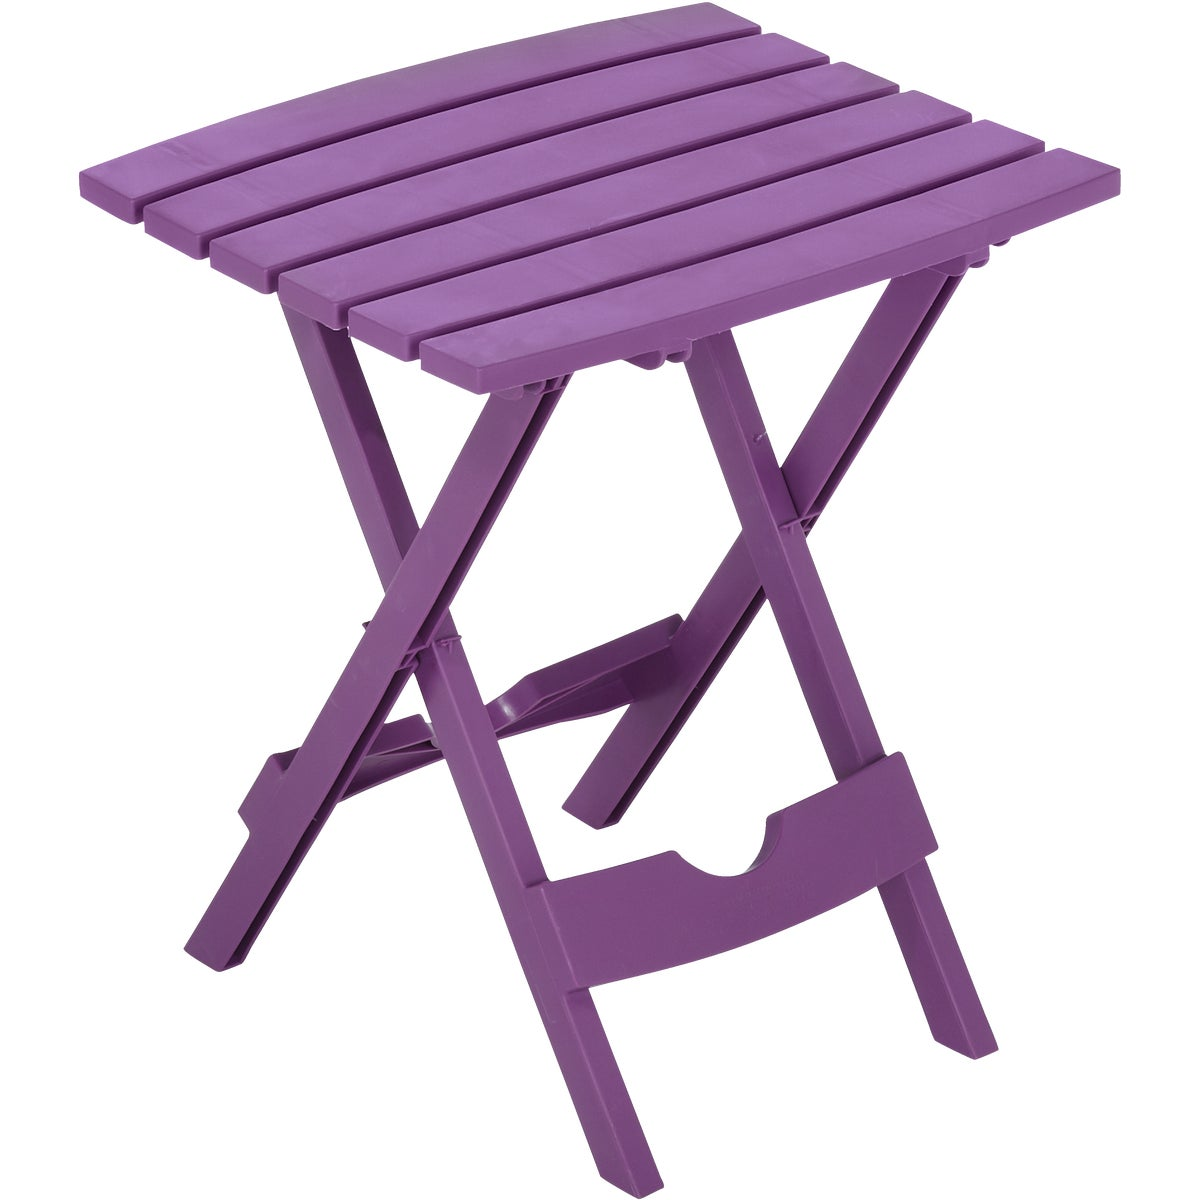 VIOLET QK FOLD TABLE - 8500-12-4748 by Adams Mfg Patio Furn